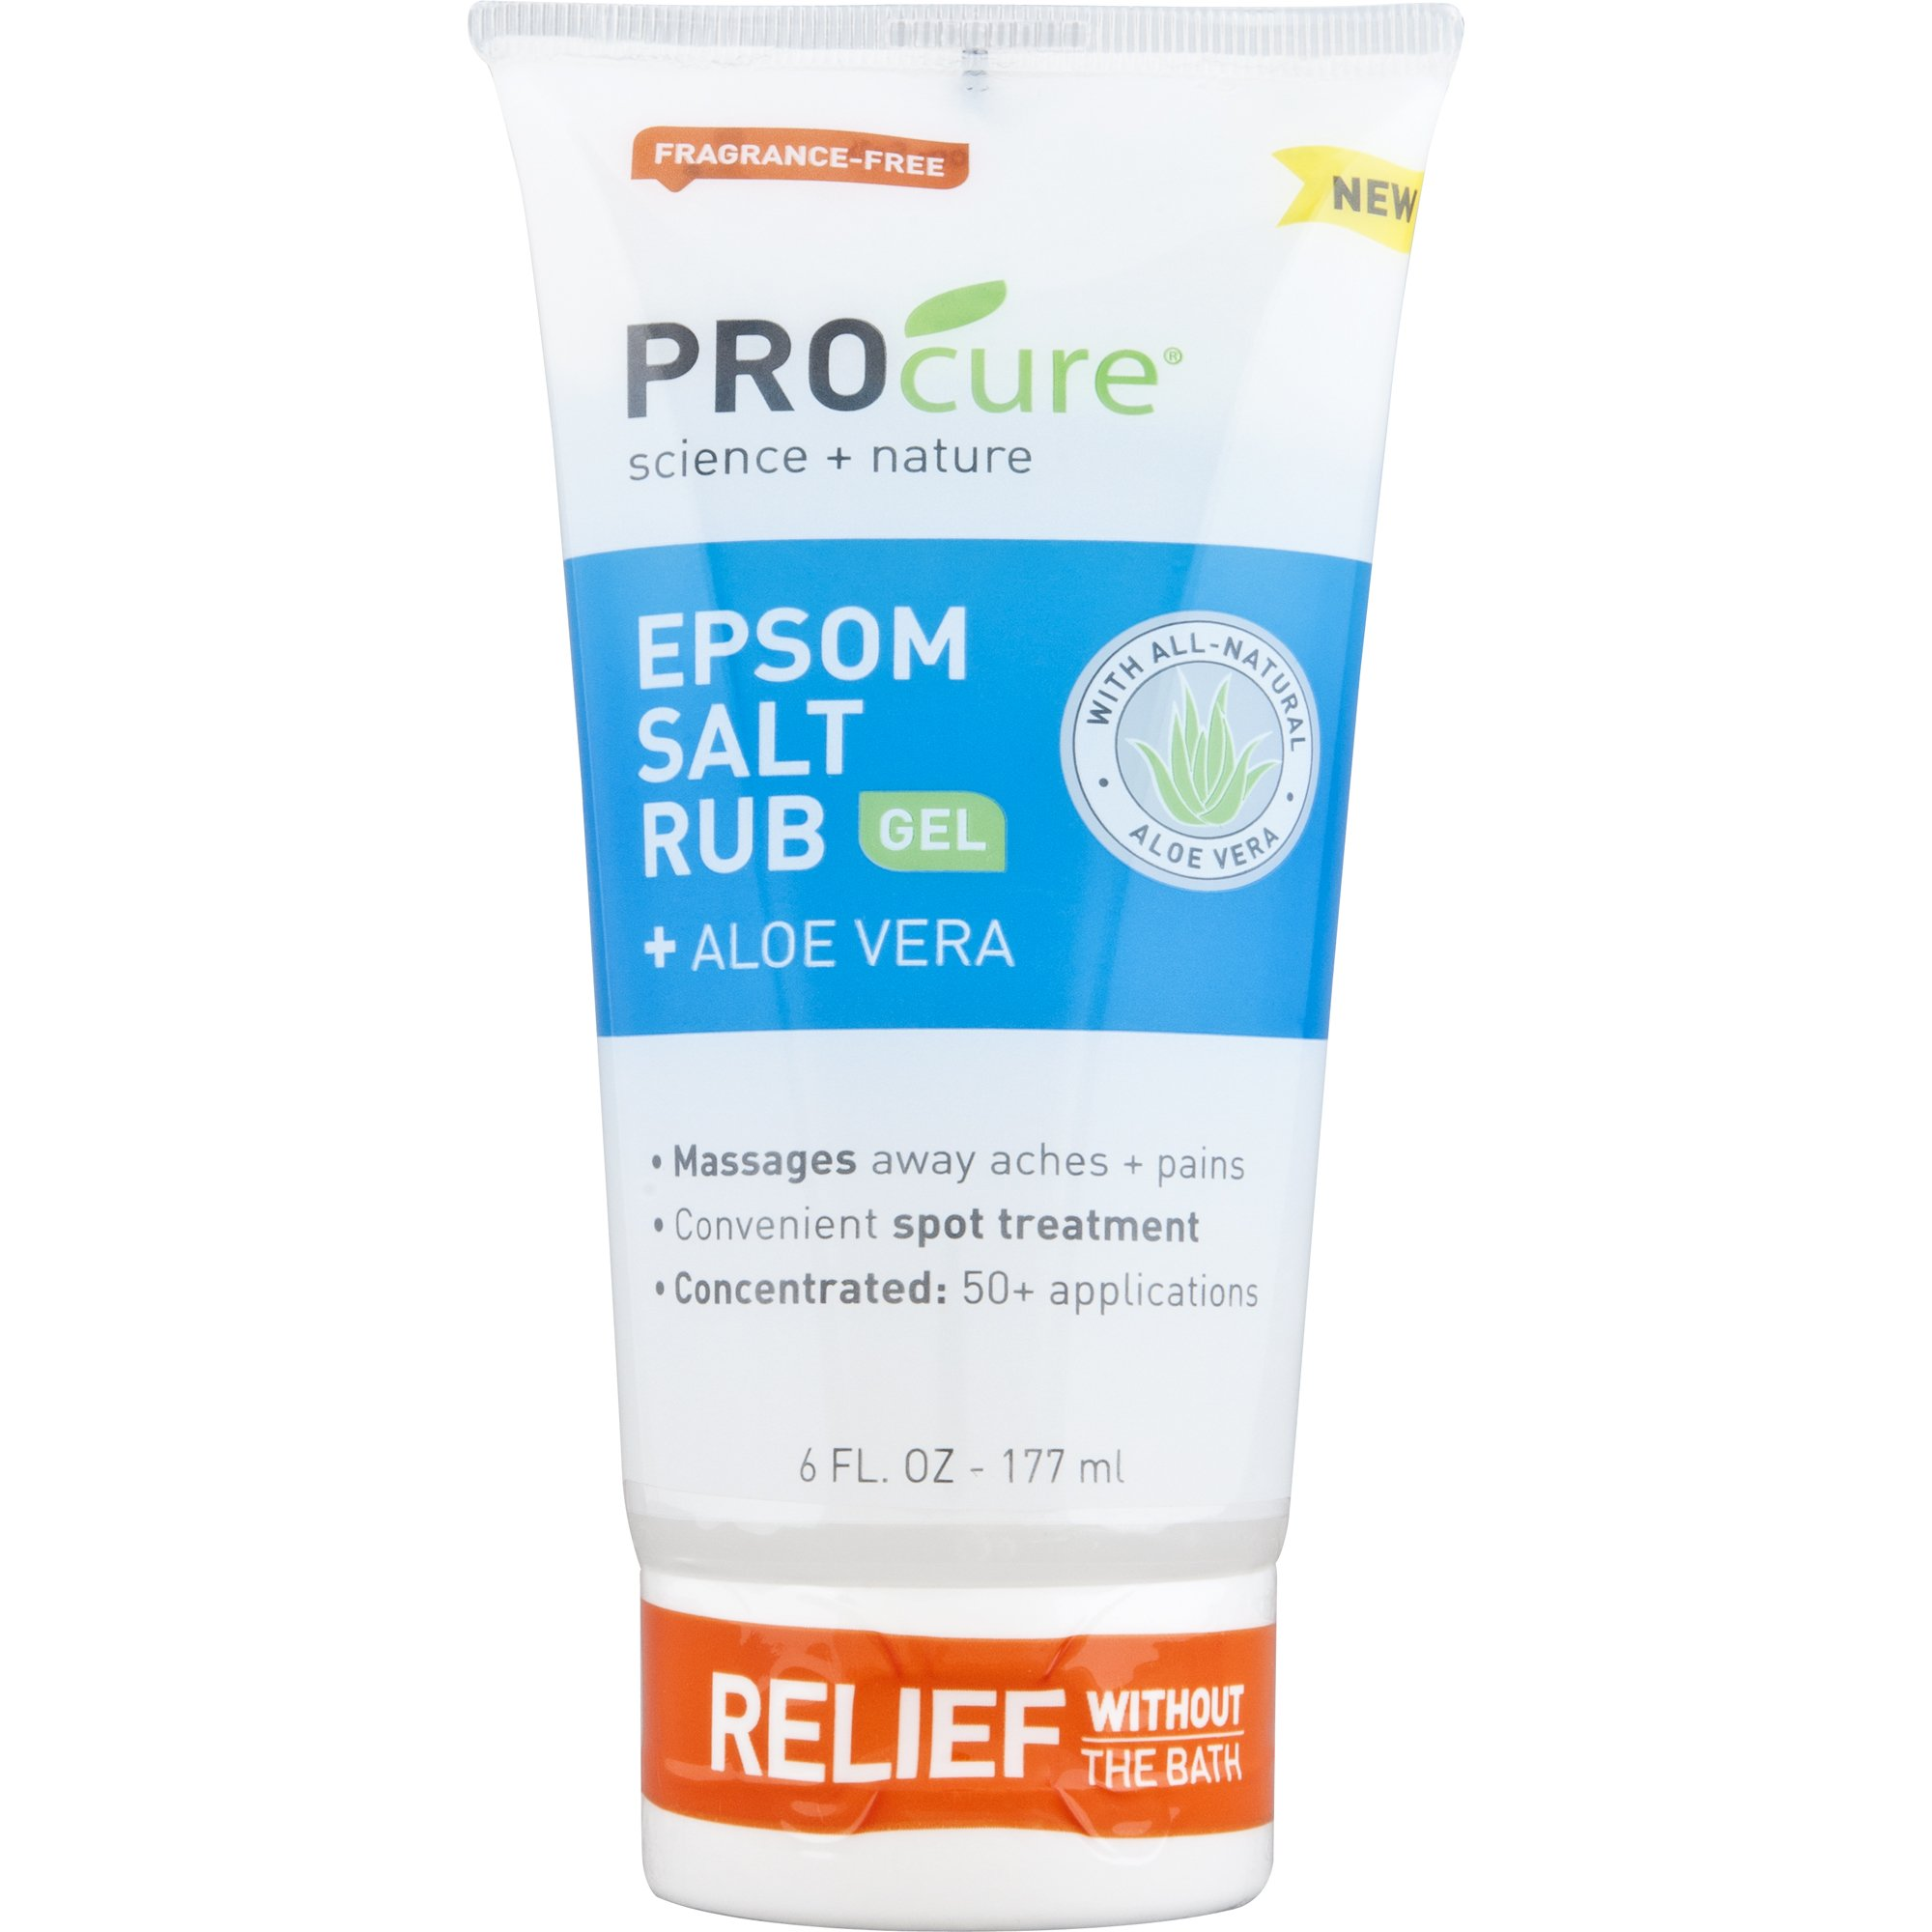 PROCURE Epsom Salt Rub Gel with Aloe Vera, 6 Fluid oz. (Pack of 3);Soothes Muscle Tension, Aches & Pains Directly Where It Hurts.